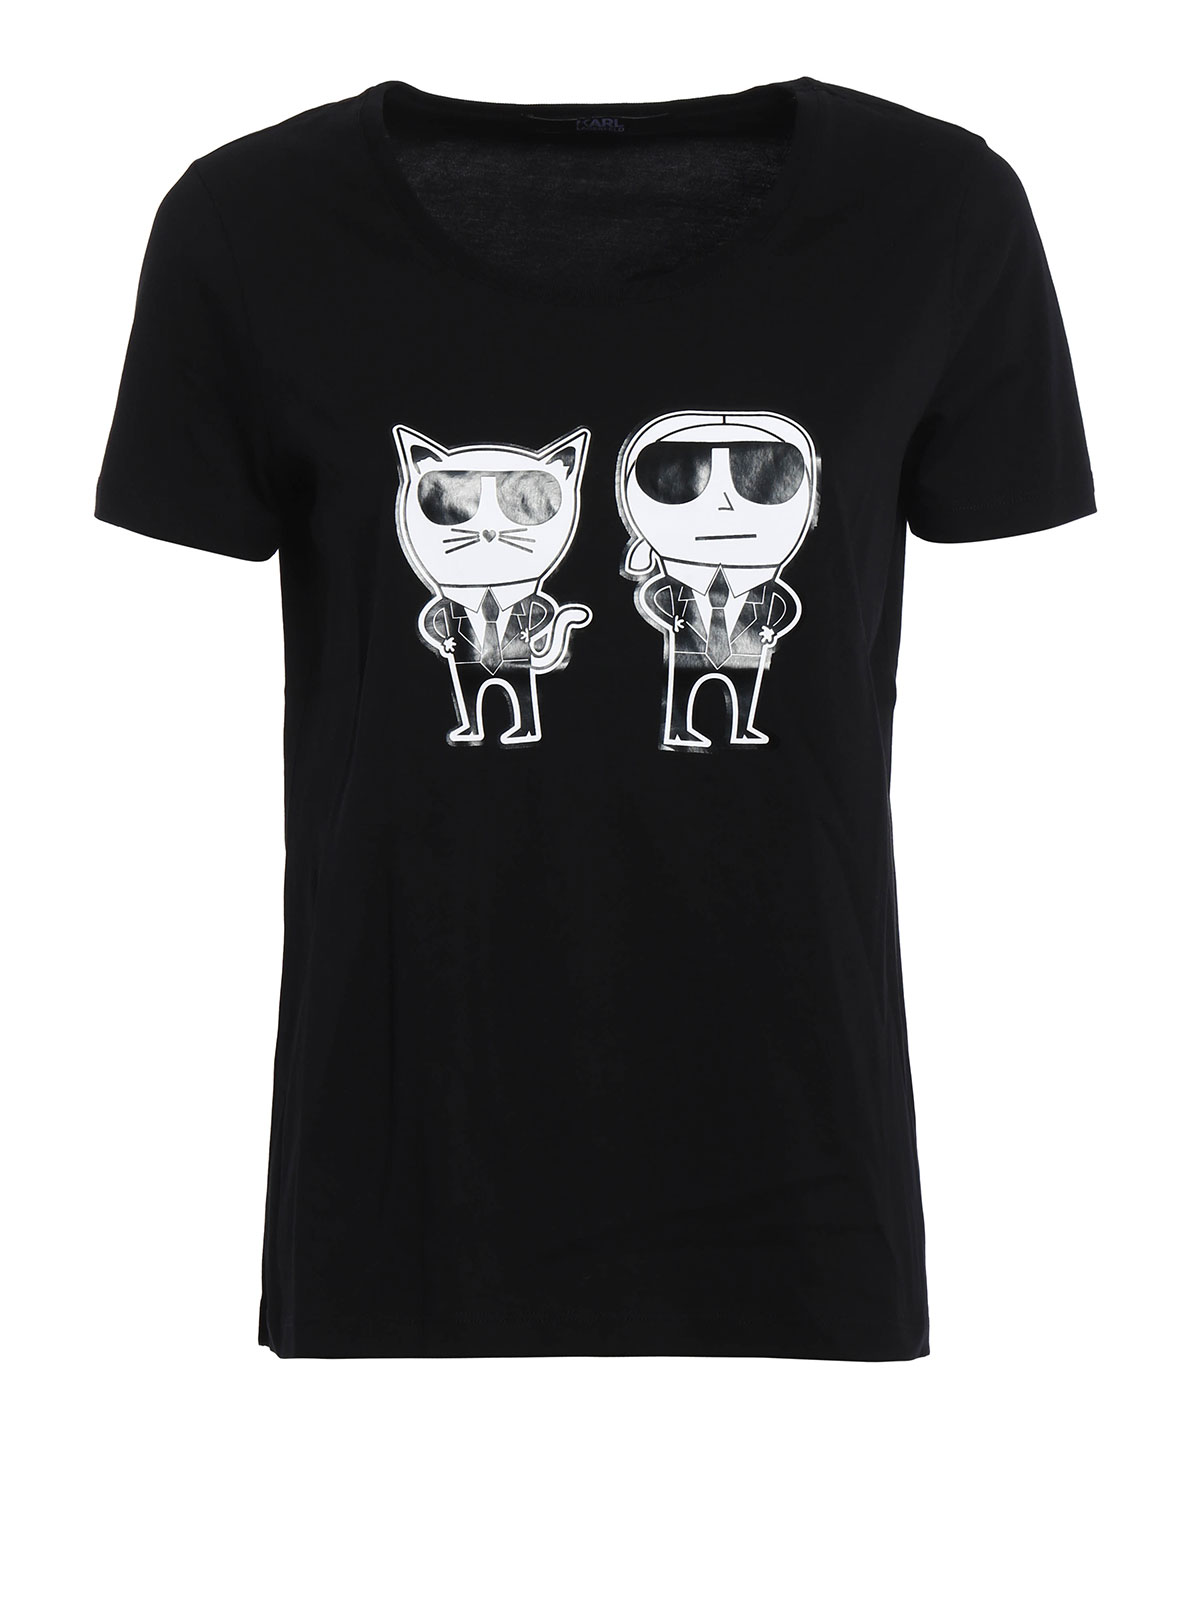 t shirt tuxedo karl choupette von karl lagerfeld t. Black Bedroom Furniture Sets. Home Design Ideas